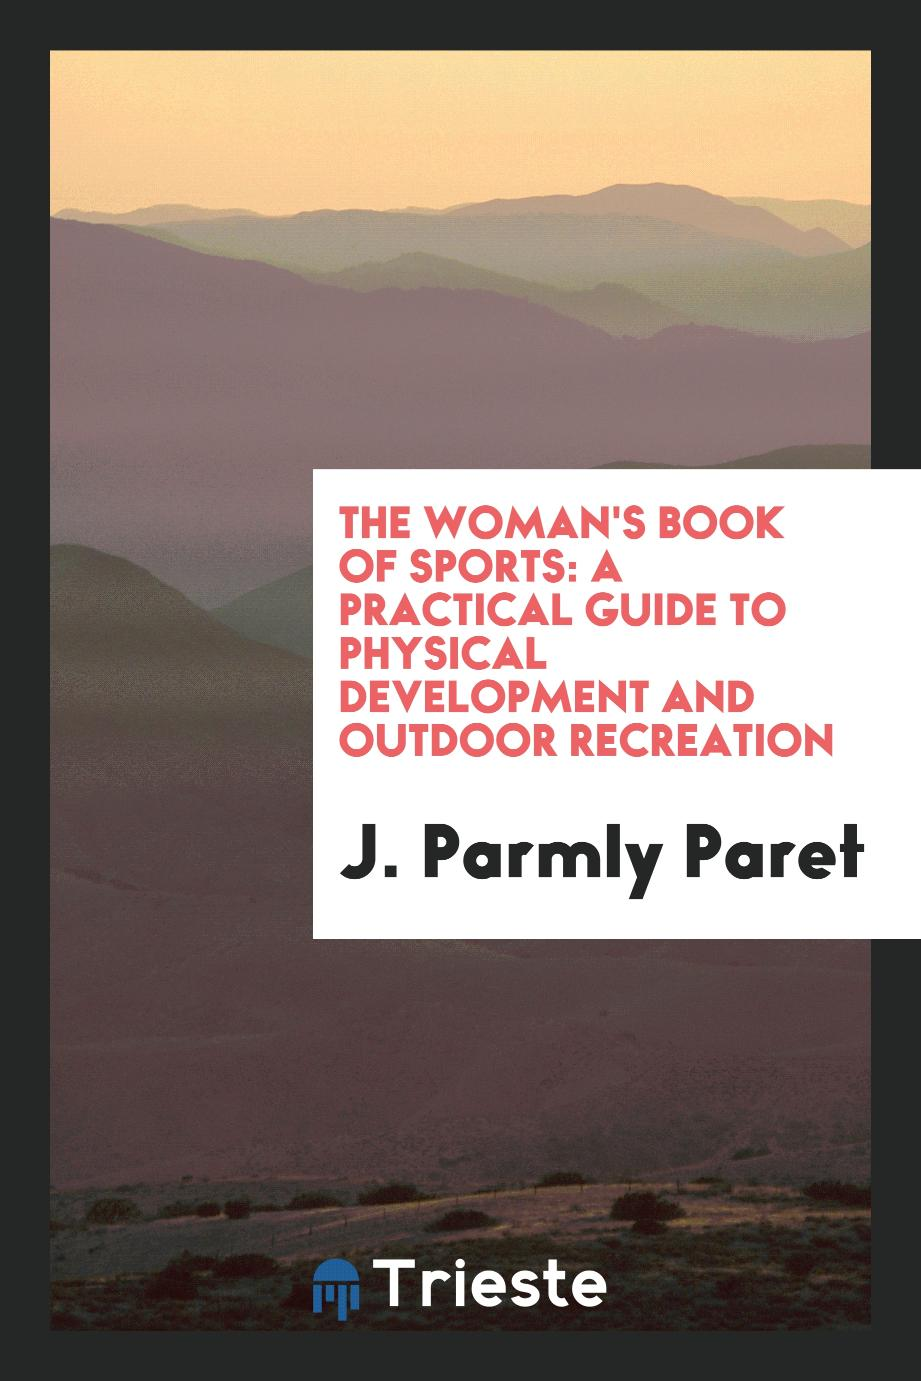 The Woman's Book of Sports: A Practical Guide to Physical Development and Outdoor Recreation